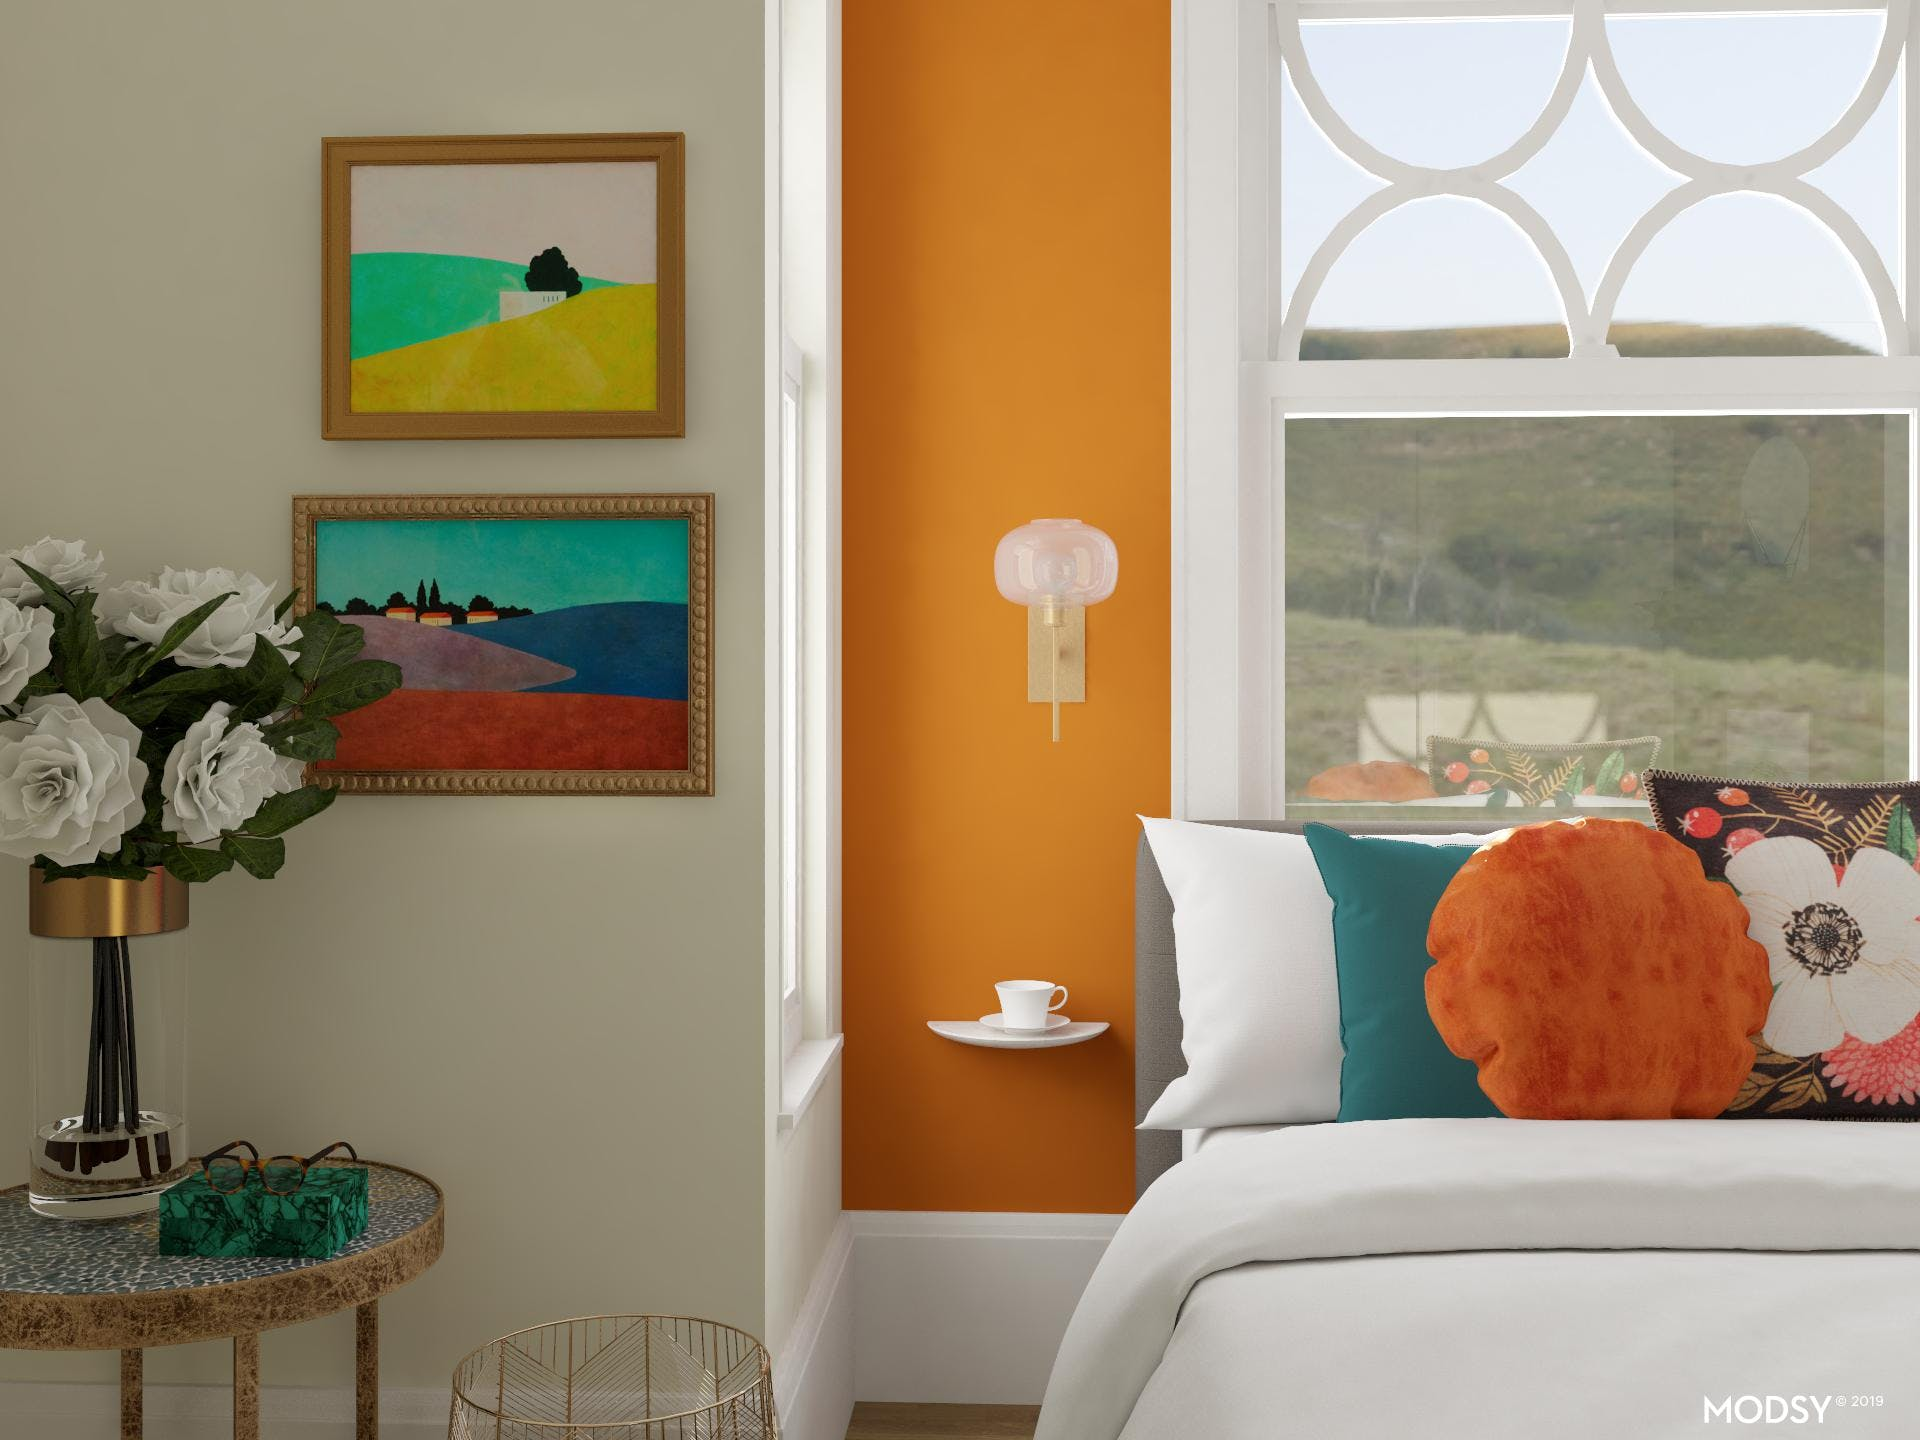 Cozy up and Stay a While in this Colorful Guest Bedroom